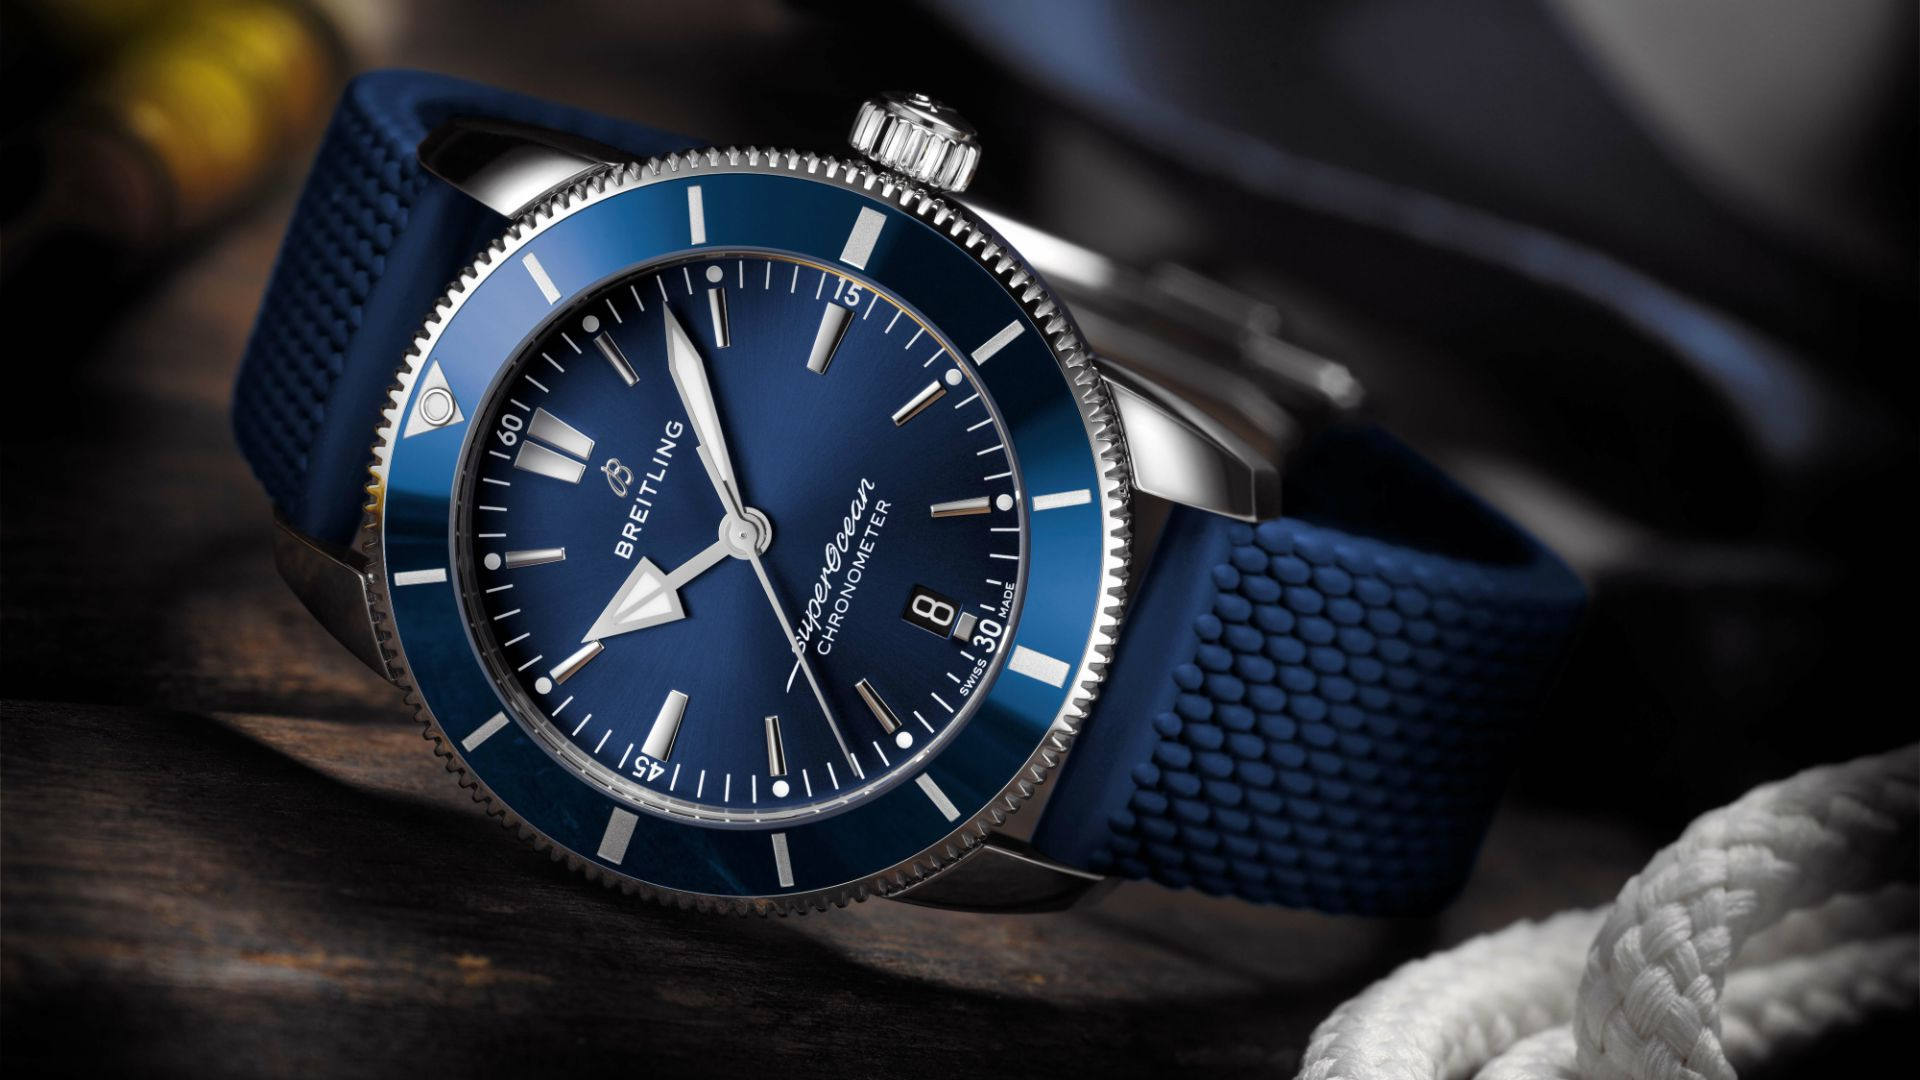 Breitling SA has received valuation services